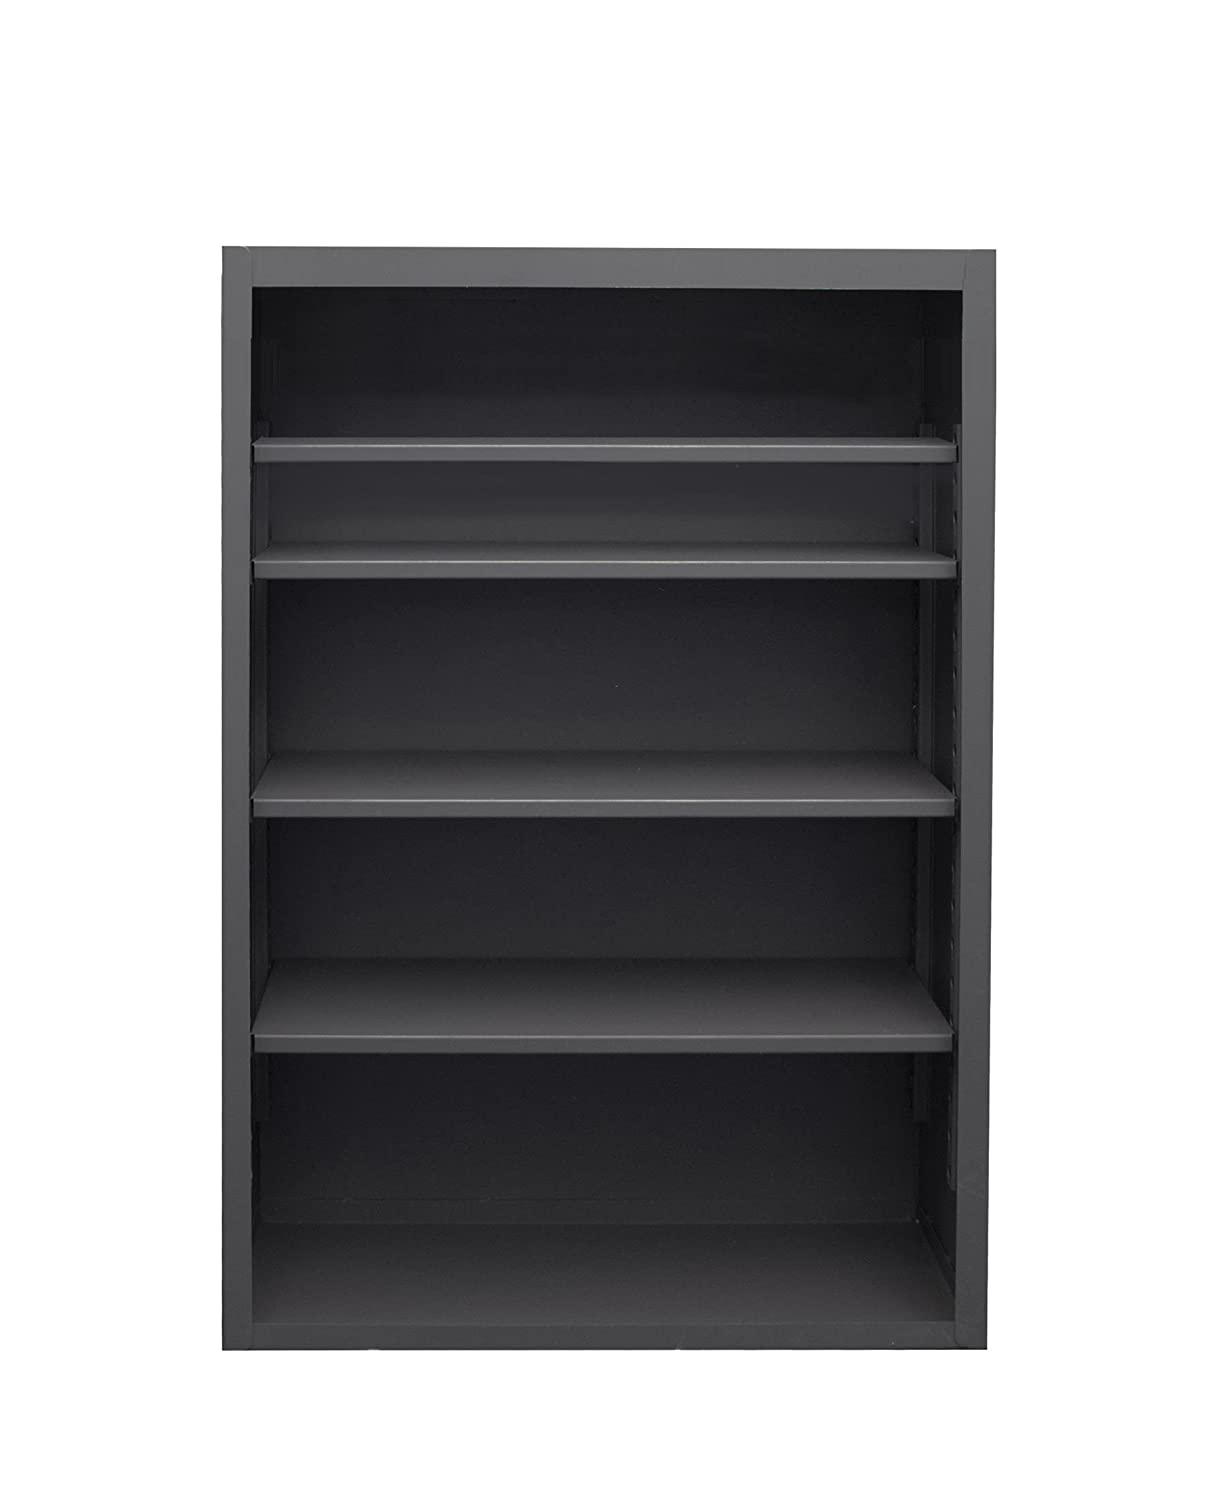 Durham 5015-4S-95 Enclosed Shelving with 4 Shelves, 48